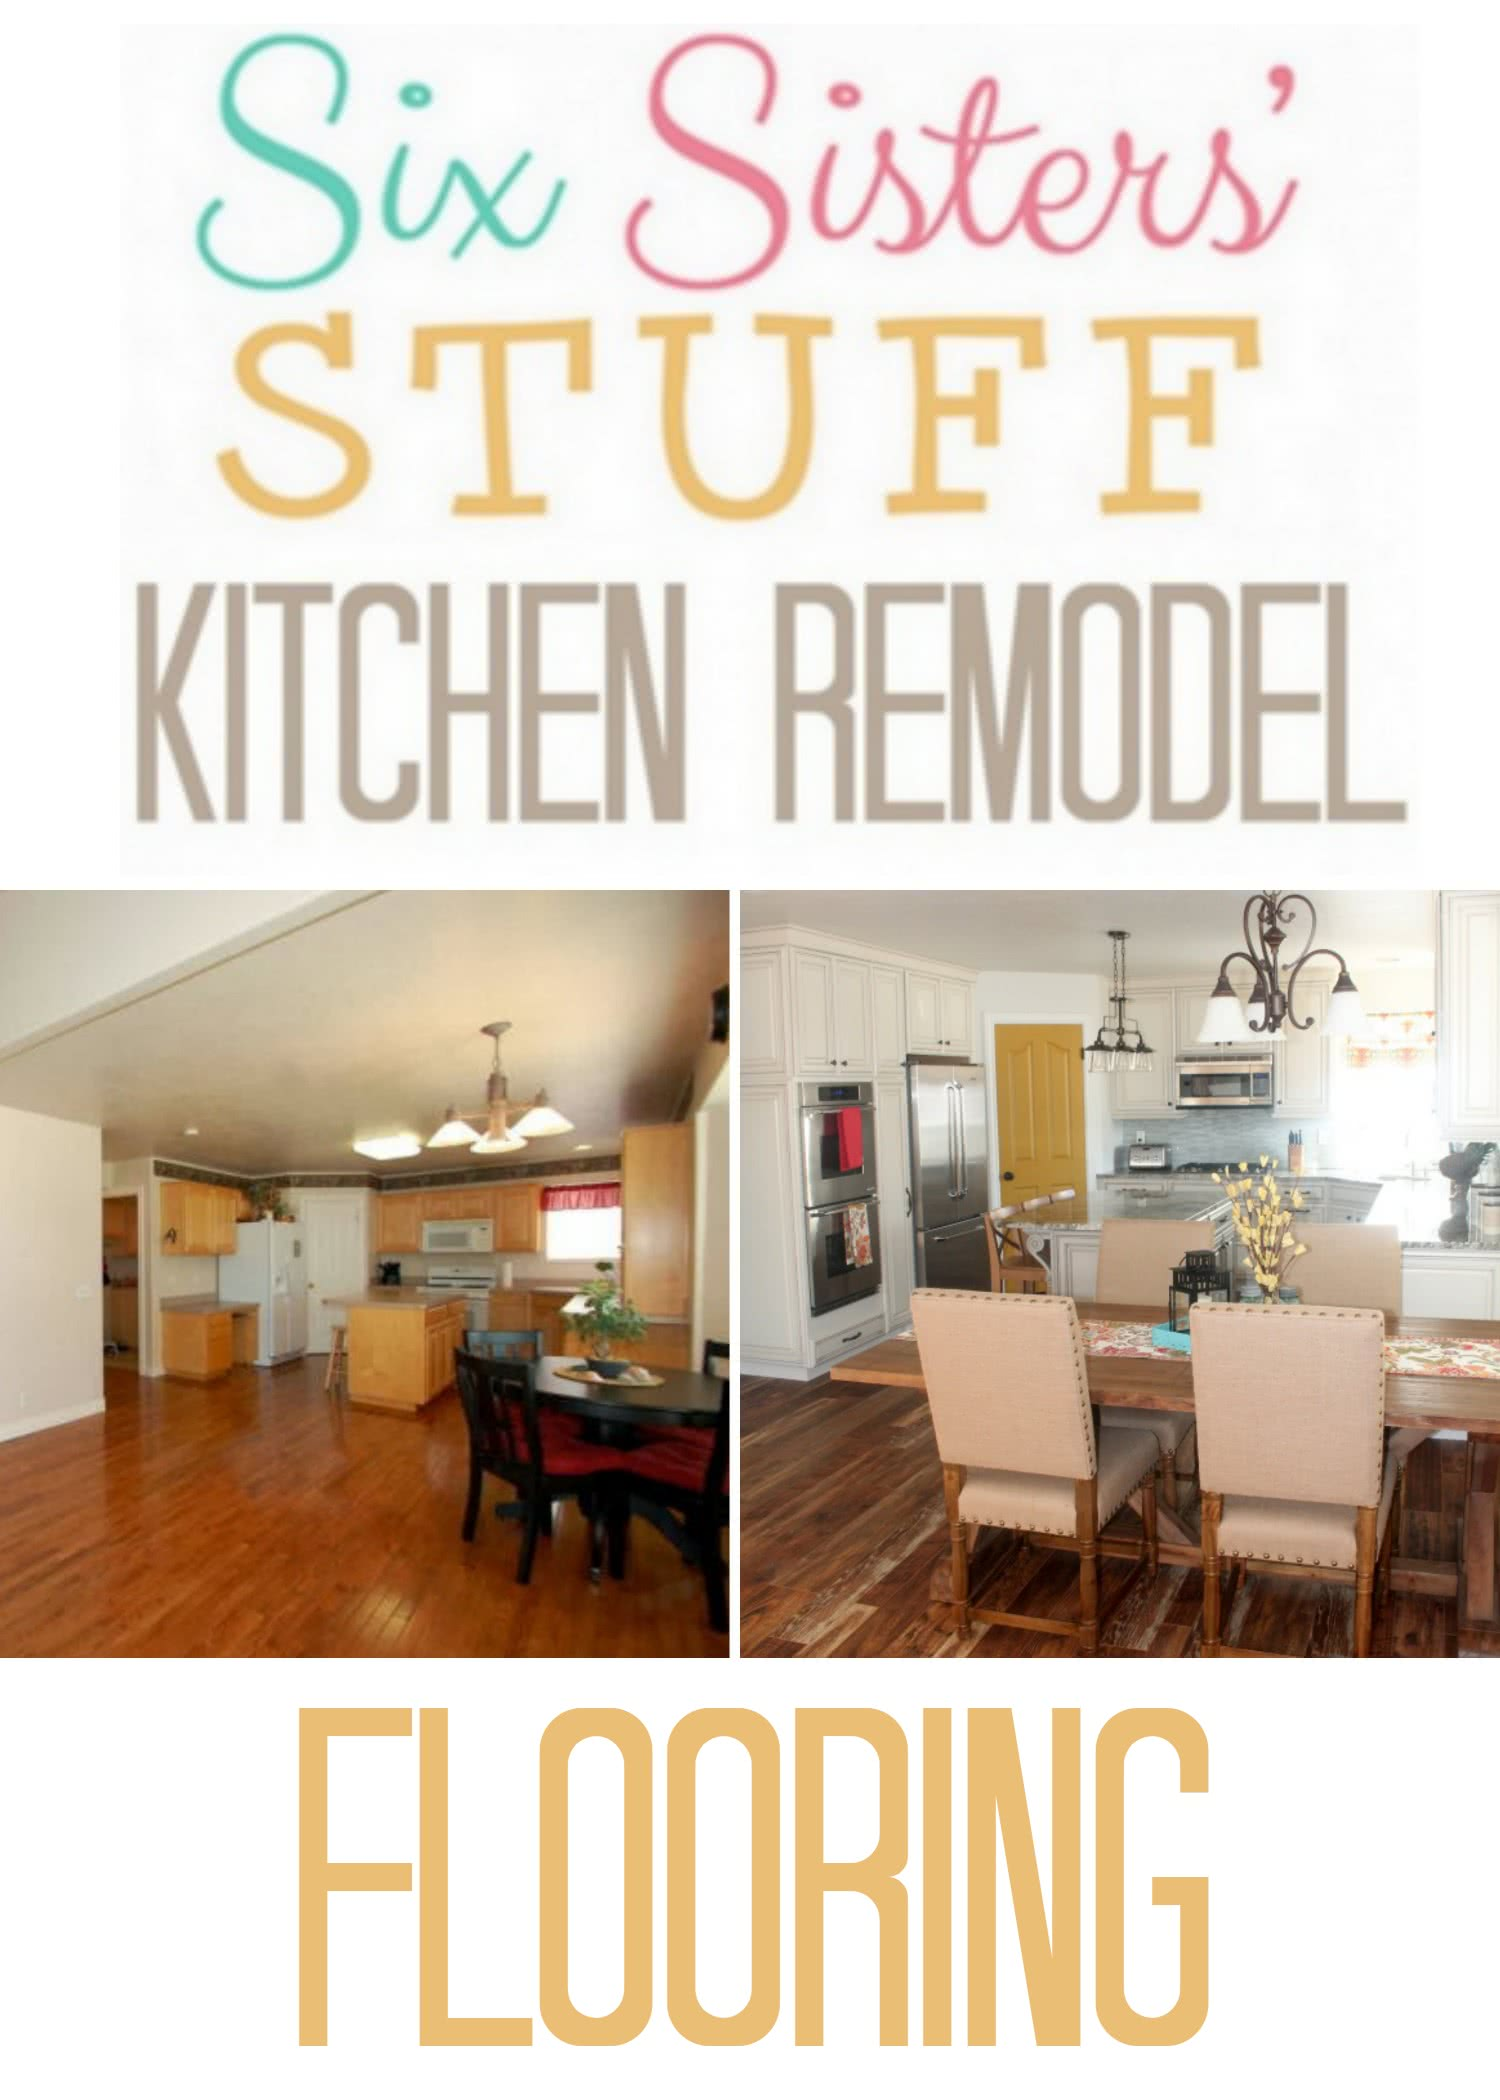 Six Sisters' Stuff Kitchen Remodel: Flooring